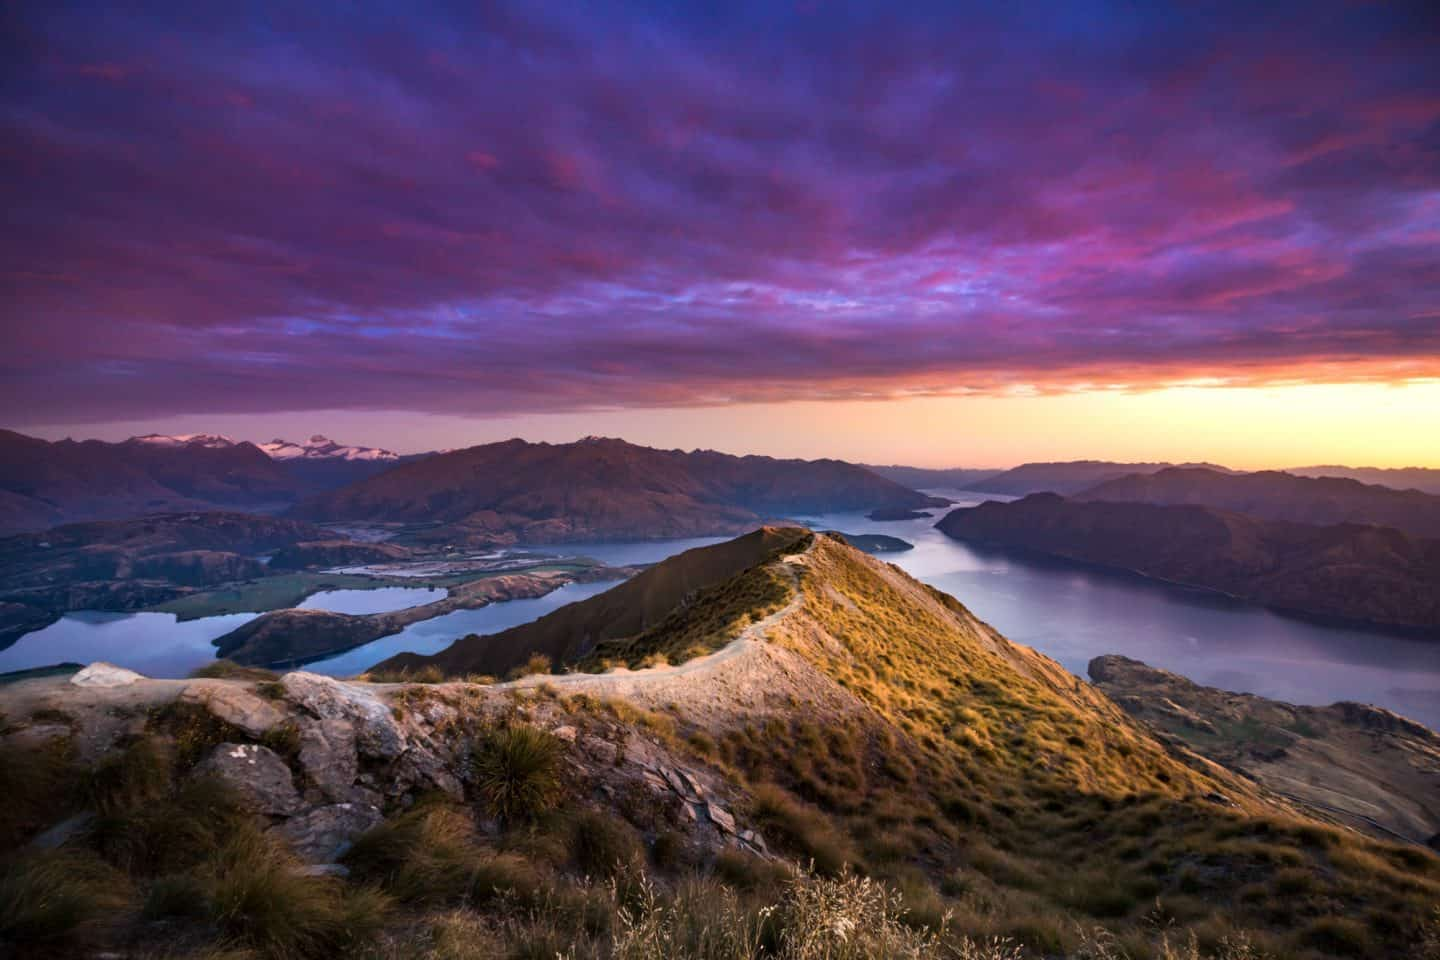 Sunrise landscape photography from Roy's Peak in New Zealand.